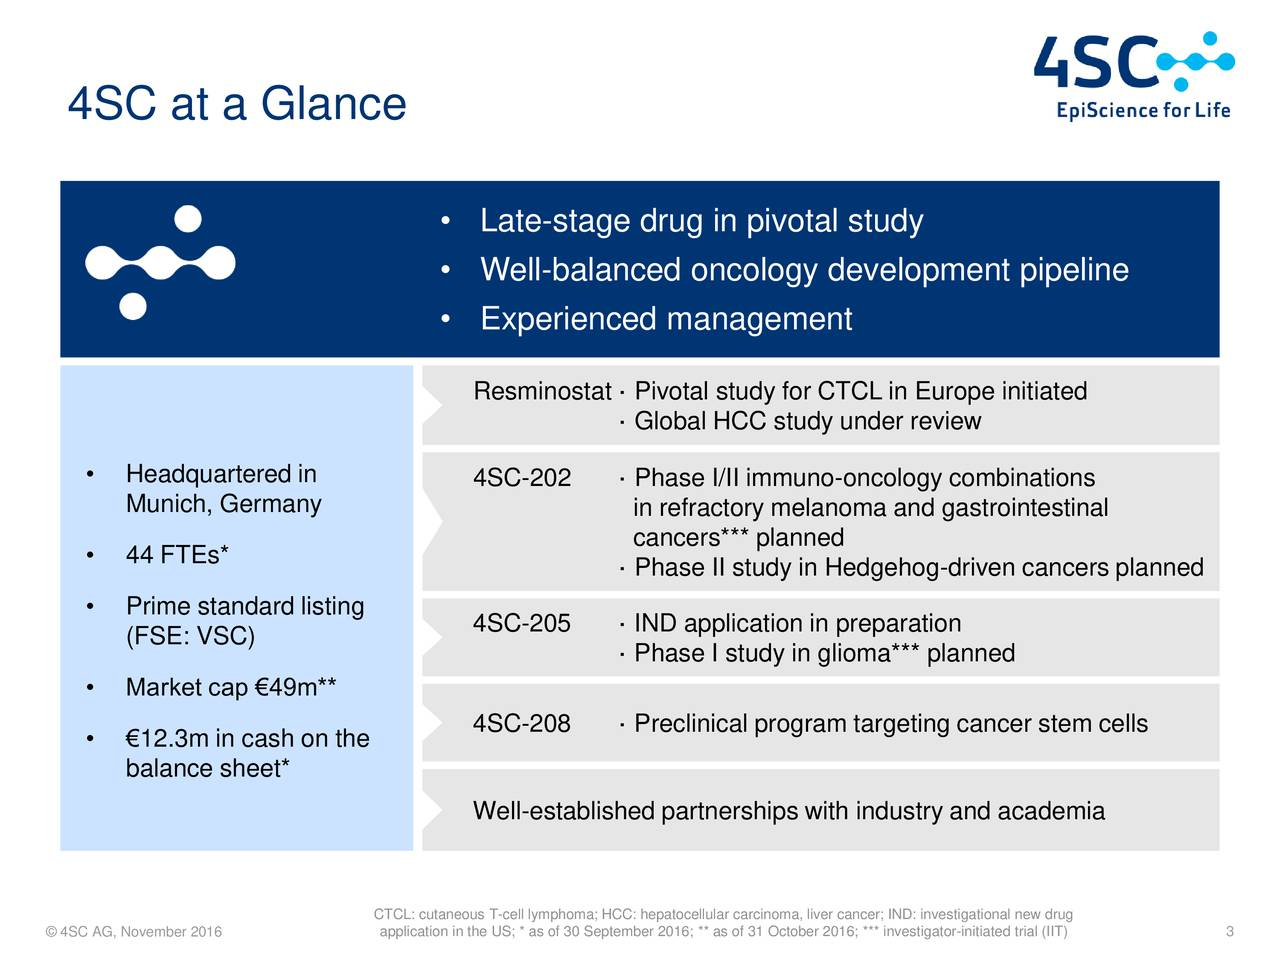 Late-stage drug in pivotal study Well-balanced oncology development pipeline Experienced management Resminostat  Pivotal study for CTCL in Europe initiated Global HCC study under review Headquartered in 4SC-202  Phase I/II immuno-oncology combinations Munich, Germany in refractory melanoma and gastrointestinal 44 FTEs* cancers*** planned Phase II study in Hedgehog-driven cancers planned Prime standard listing 4SC-205  IND application in preparation (FSE: VSC)  Phase I study in glioma*** planned Market cap 49m** 4SC-208  Preclinical program targeting cancer stem cells 12.3m in cash on the balance sheet* Well-established partnerships with industry and academia CTCL: cutaneous T-cell lymphoma; HCC: hepatocellular carcinoma, liver cancer; IND: investigational new drug 4SC AG, November 2016 application in the US; * as of 30 September 2016; ** as of 31 October 2016; *** investigator-initiated trial (IIT)